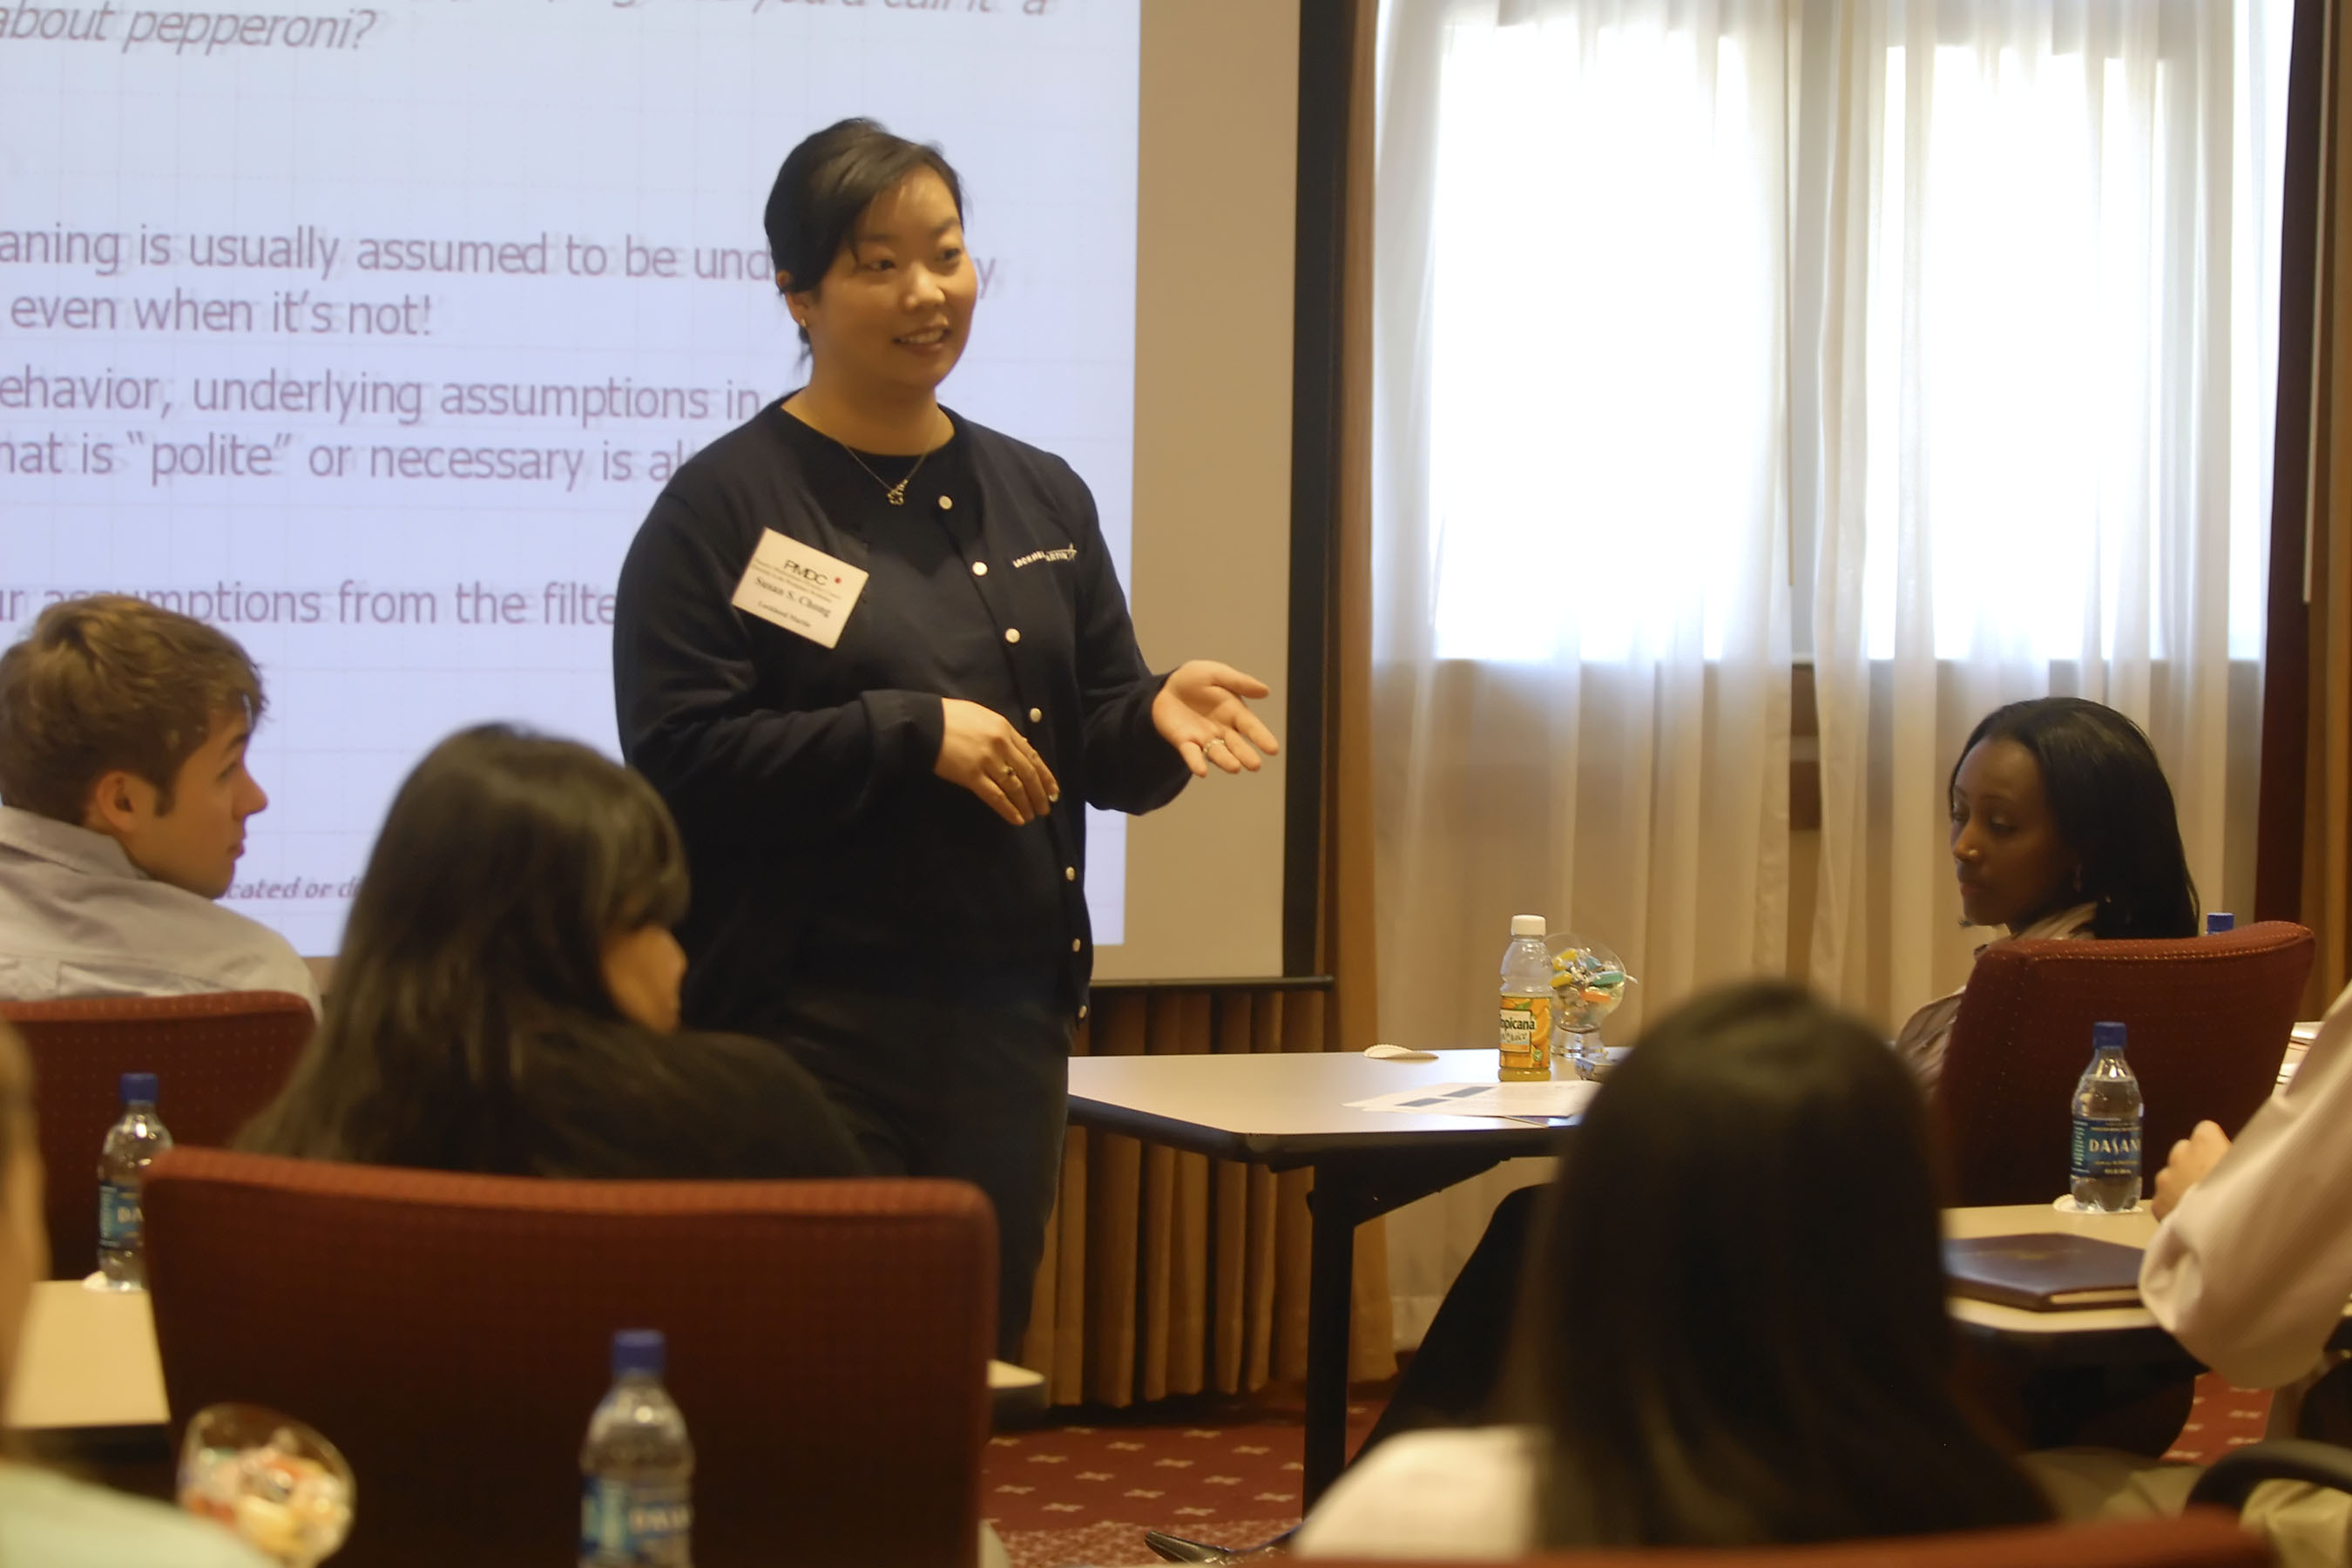 The first diversity conference organized by the Pamplin Multicultural Diversity Council in March 2006 included a workshop led by a representative from Lockheed Martin.